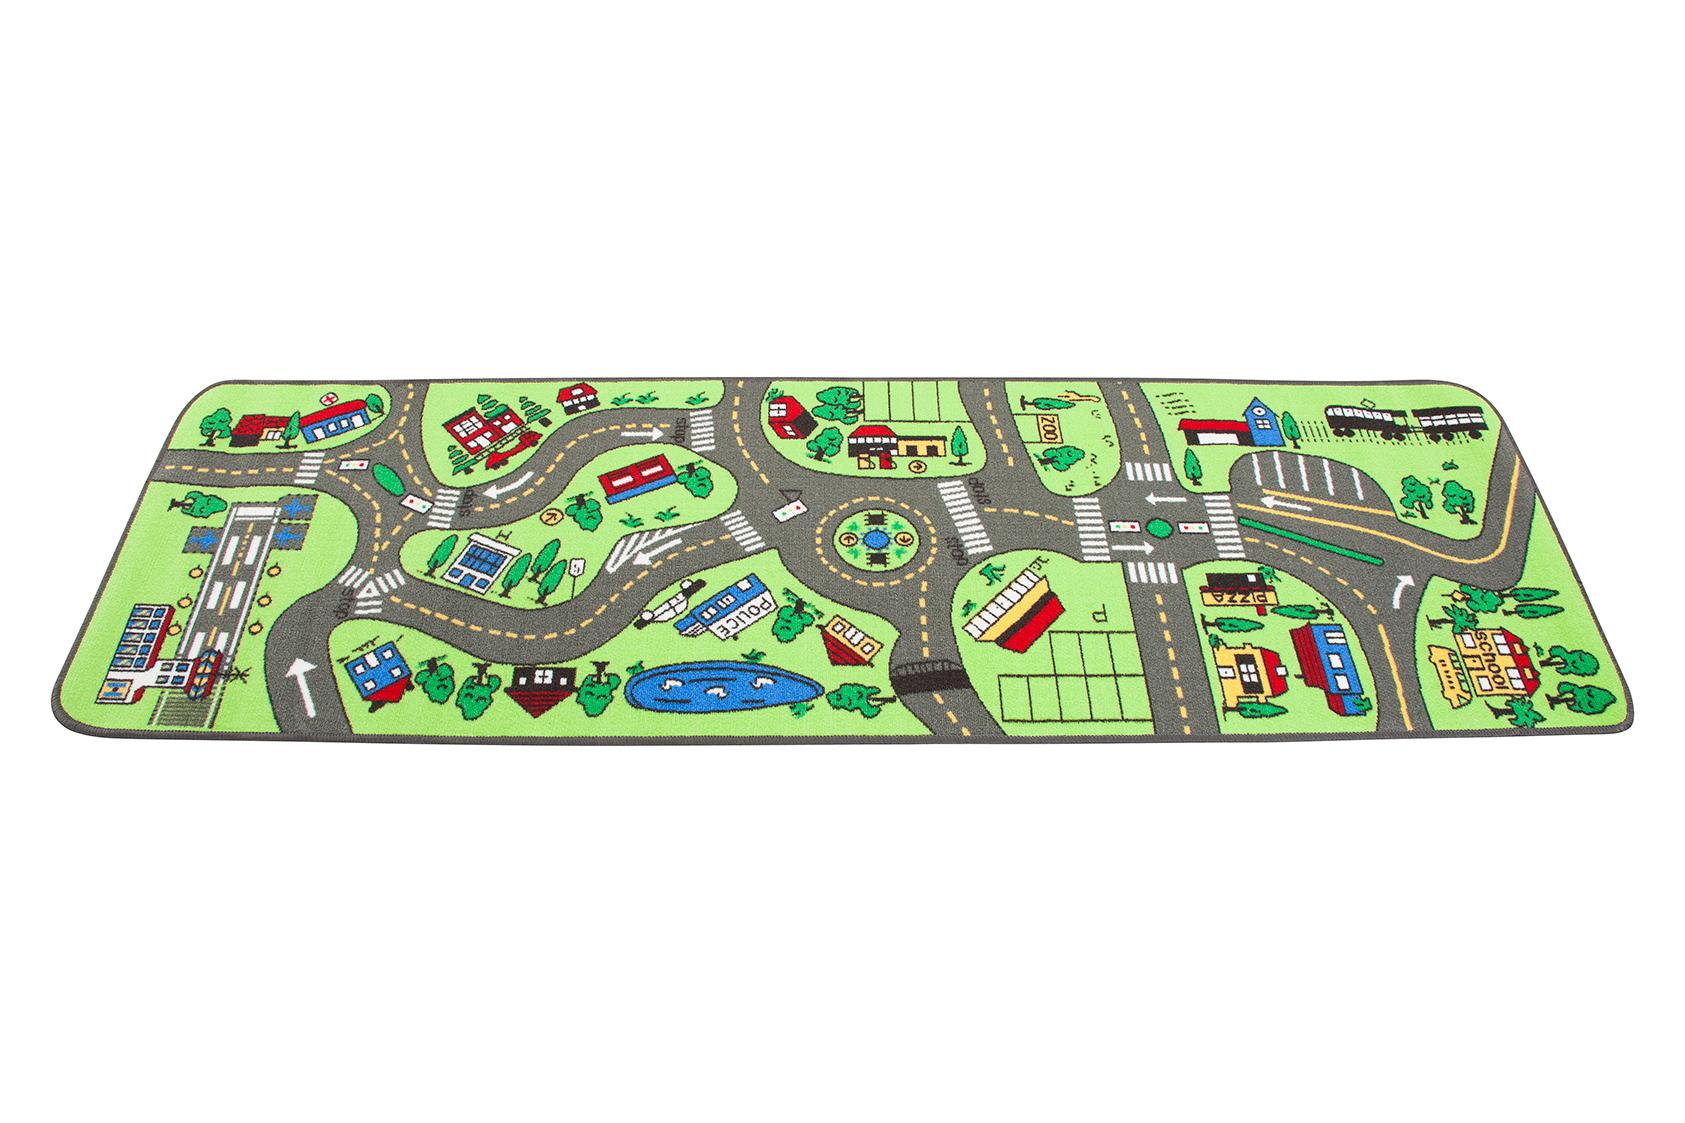 Giant Road Play Carpet By Learning Carpets